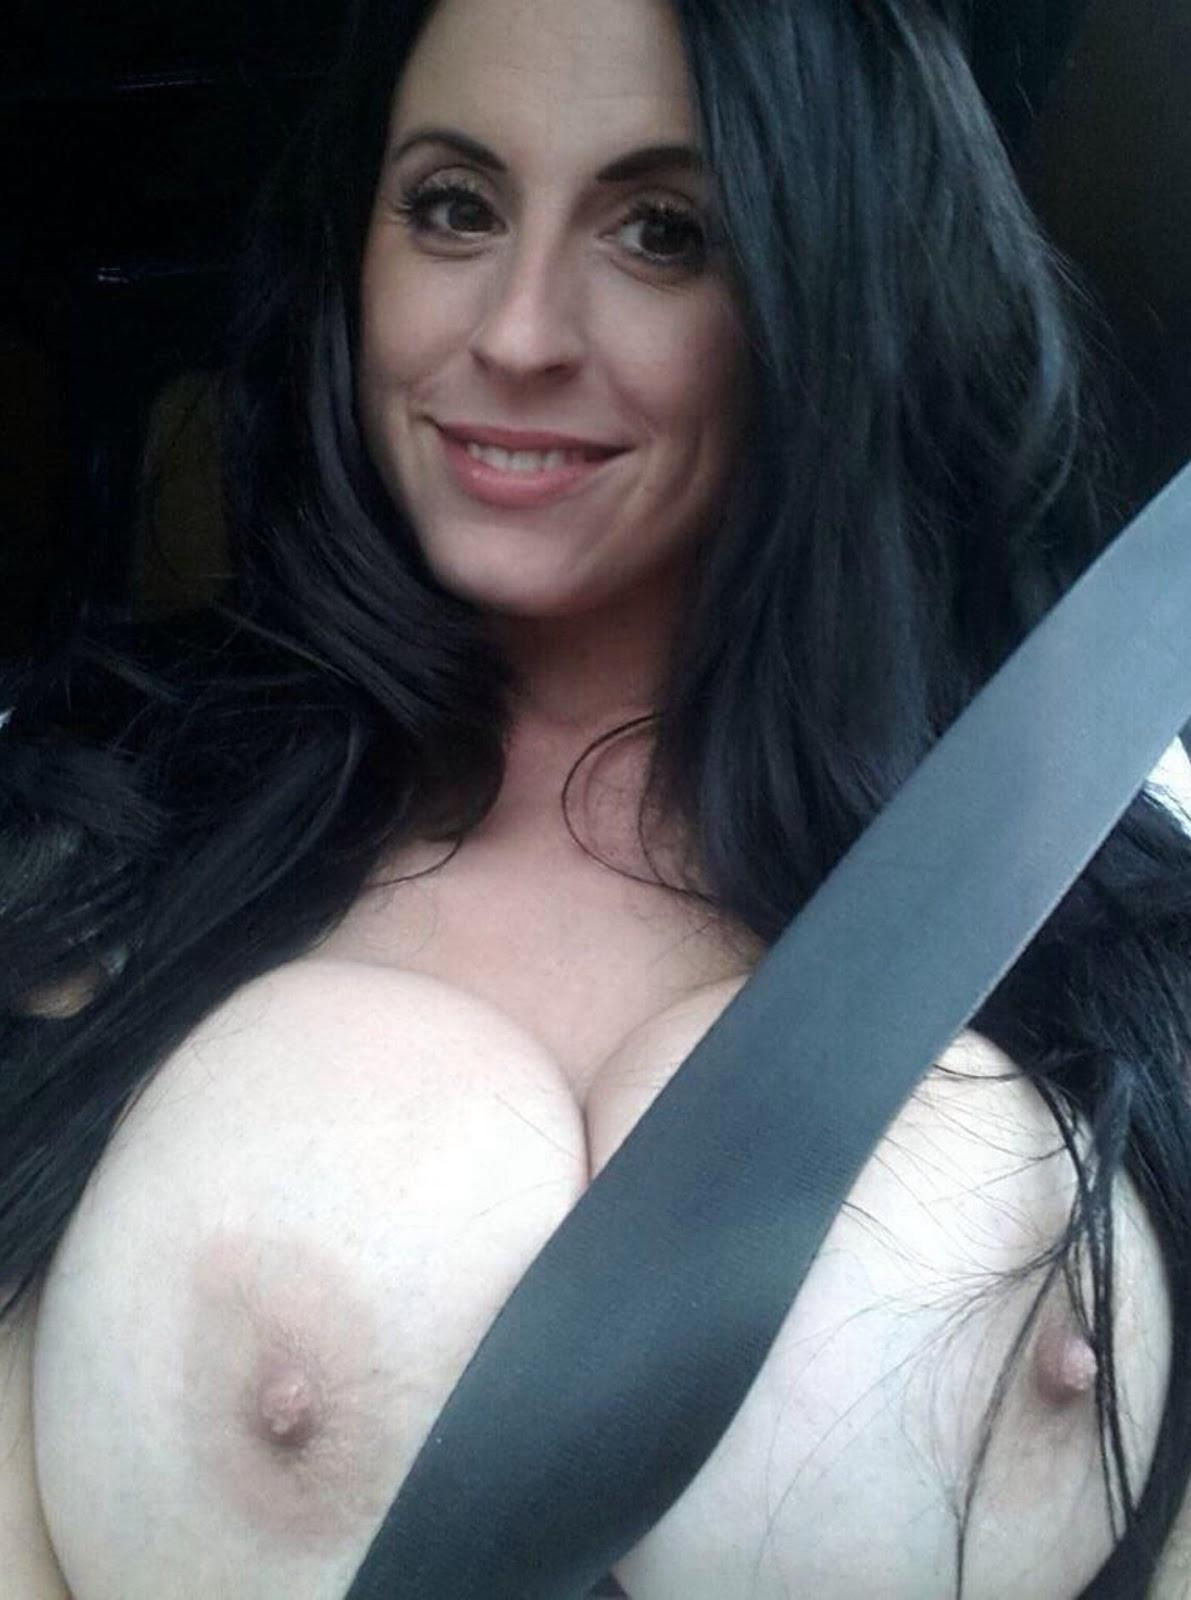 Busty brunette women uncovering her big tits sitting in the car